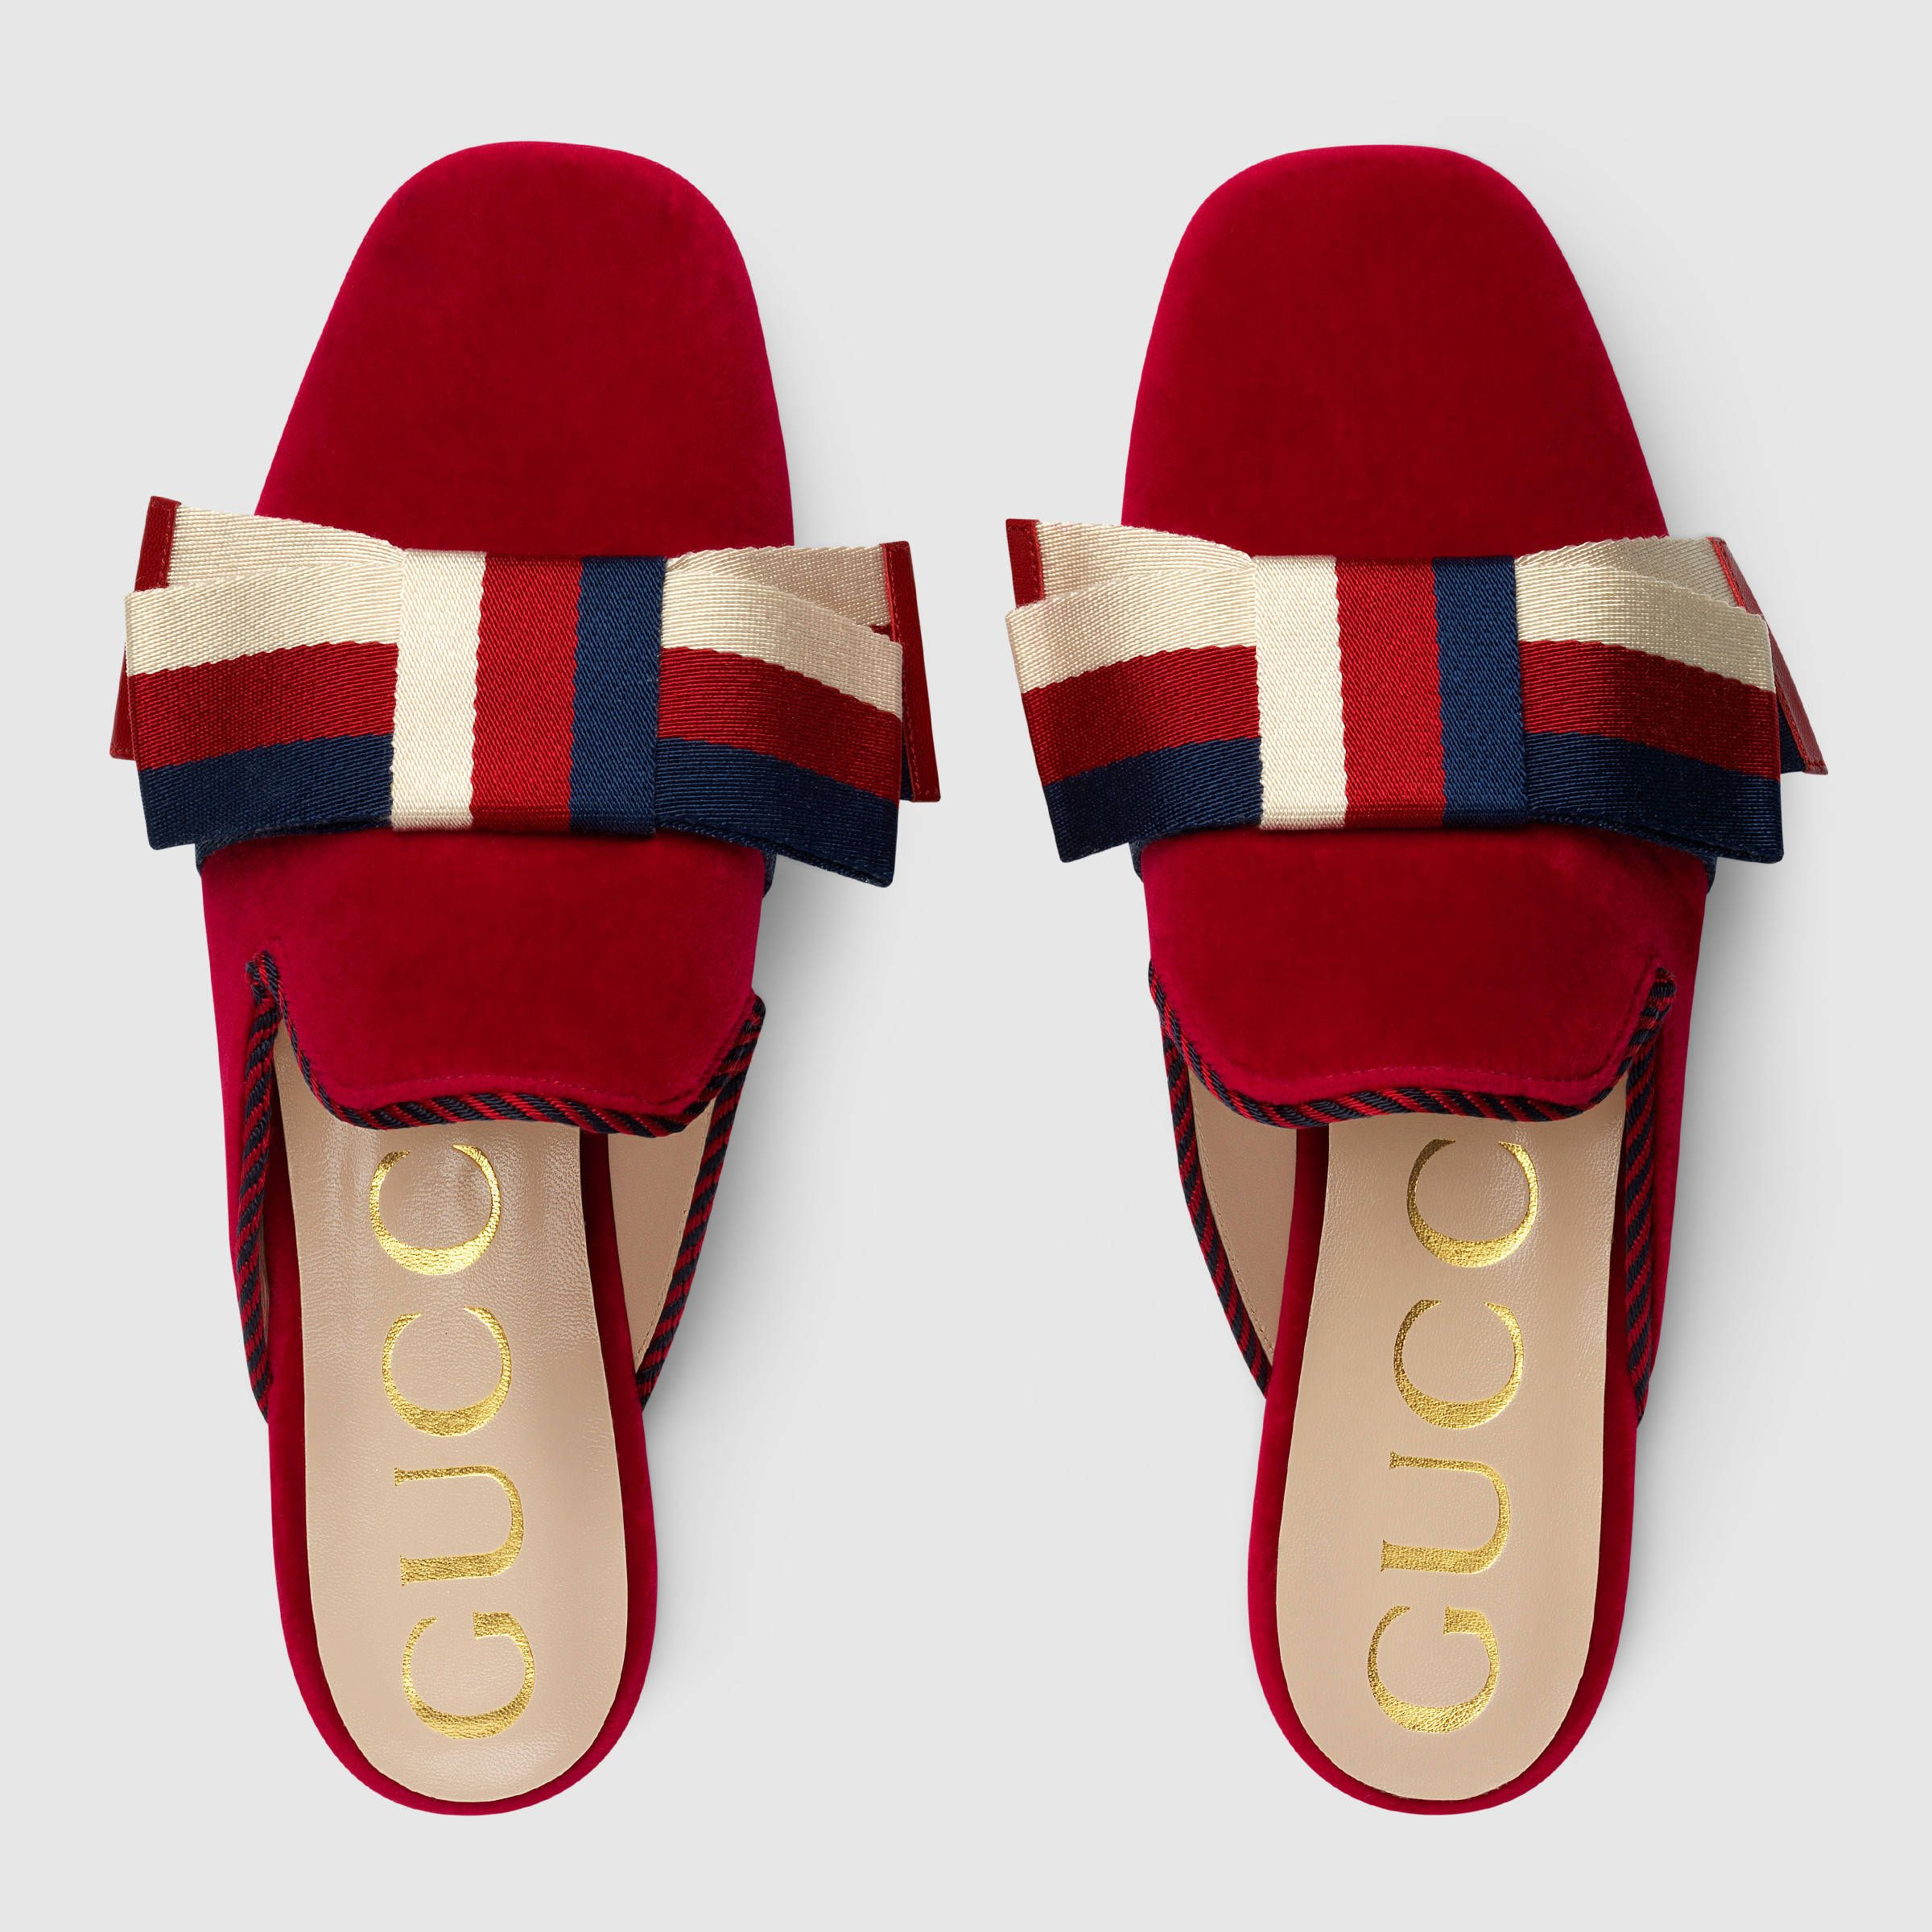 ea9c5f38101a Velvet slipper with Sylvie bow - Gucci Women s Moccasins   Loafers Velvet  slipper with Sylvie bow   630